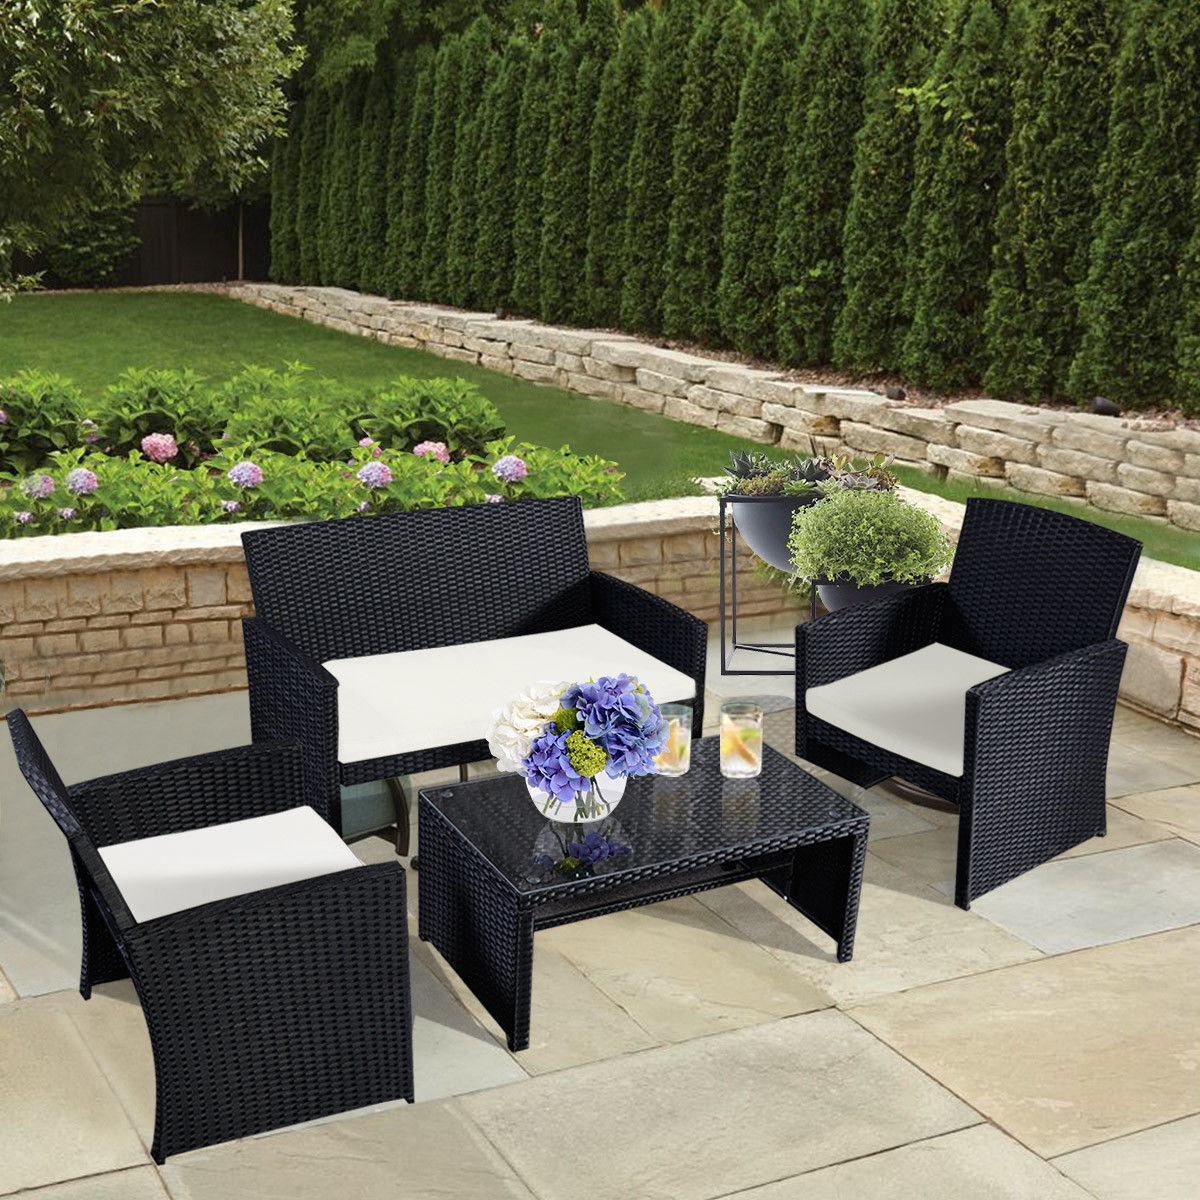 Costway 4 Pc Rattan Patio Furniture Set Garden Lawn Sofa Wicker Cushioned Seat Black by Costway